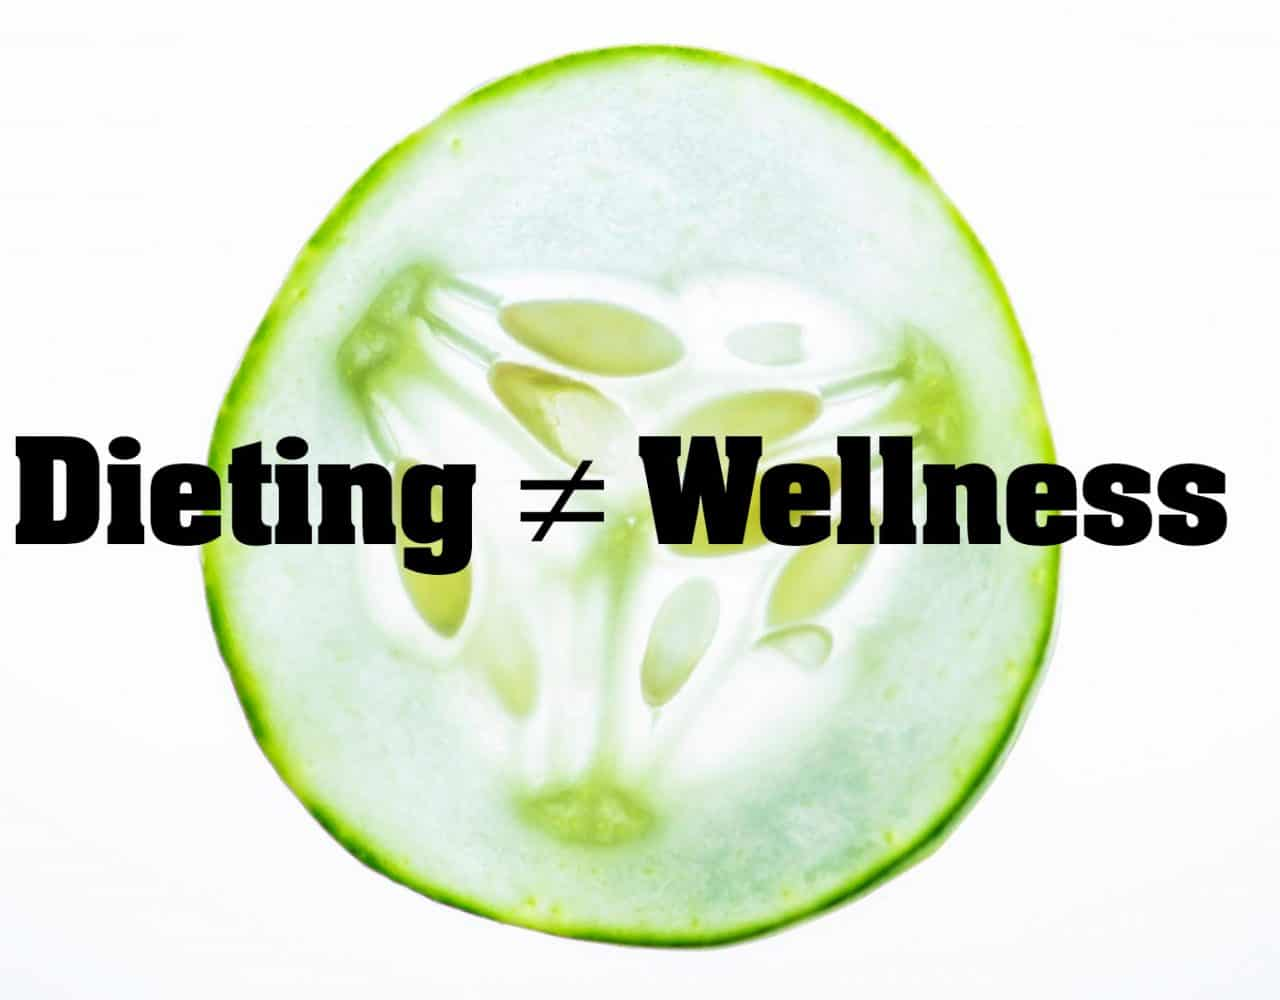 Rebranding Dieting As Wellness